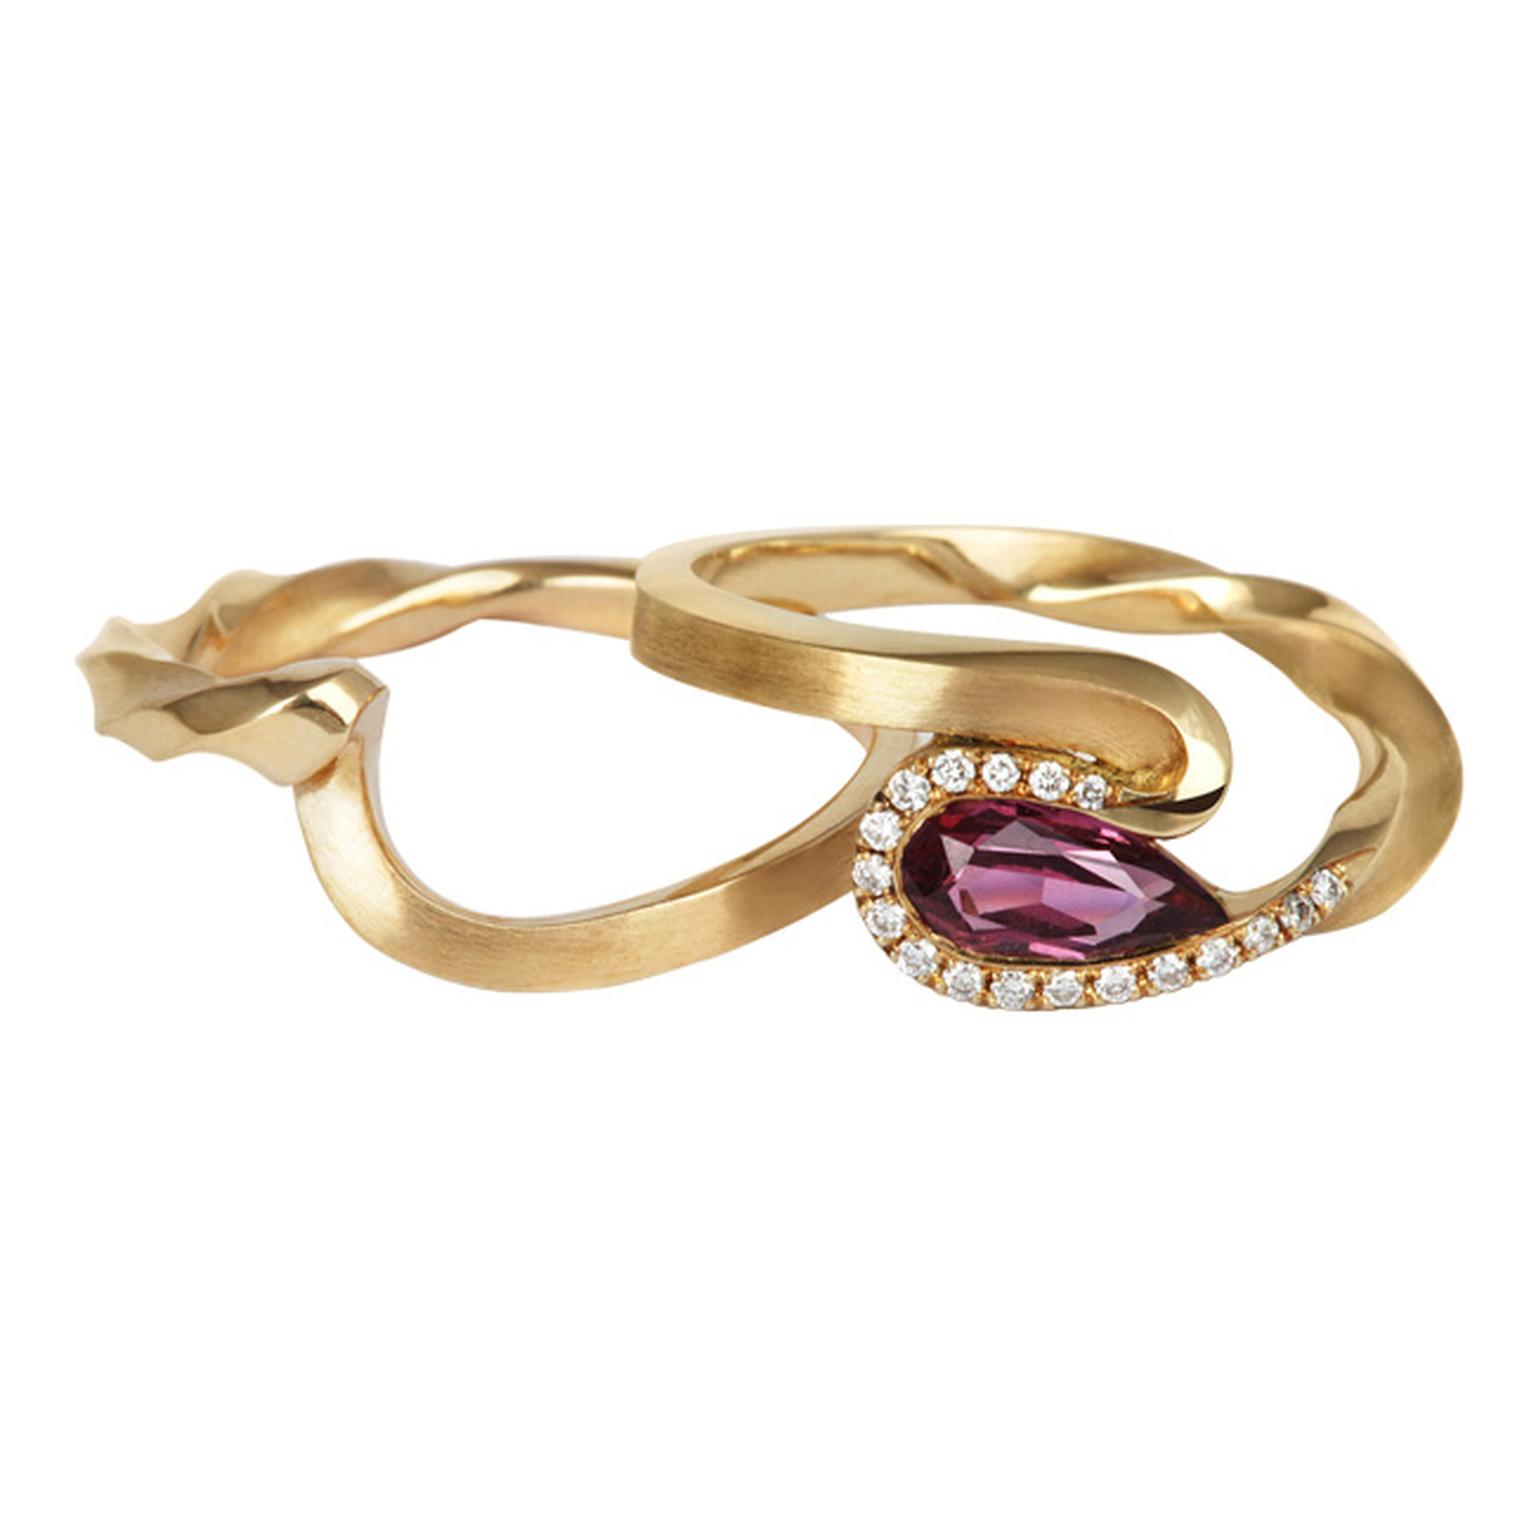 Jessica Poole Sapphire Twist rings in Fairtrade gold with diamonds_20140131_Main